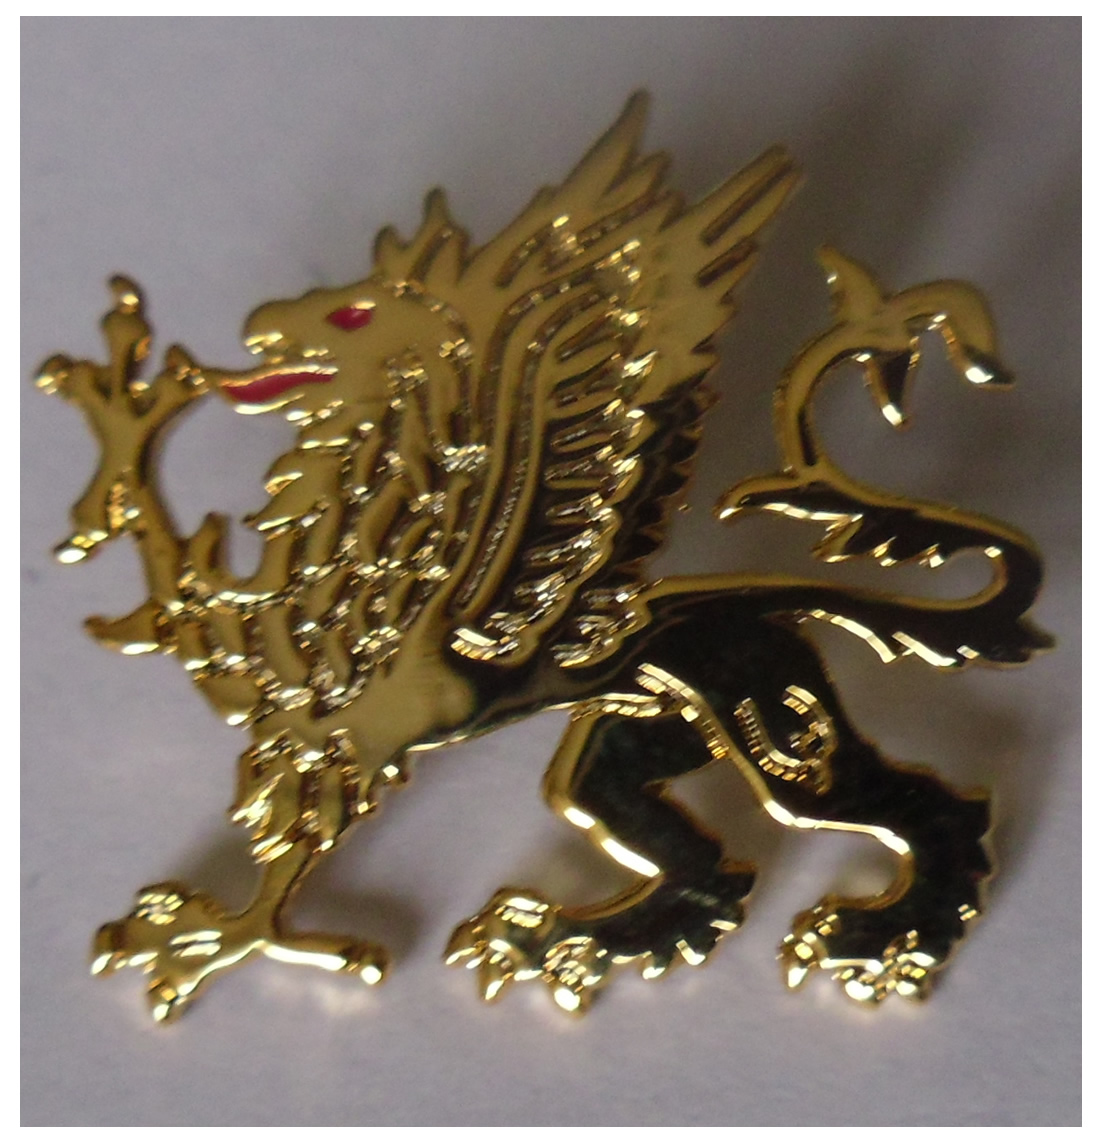 Griffin metal pin badge in gold colour metal